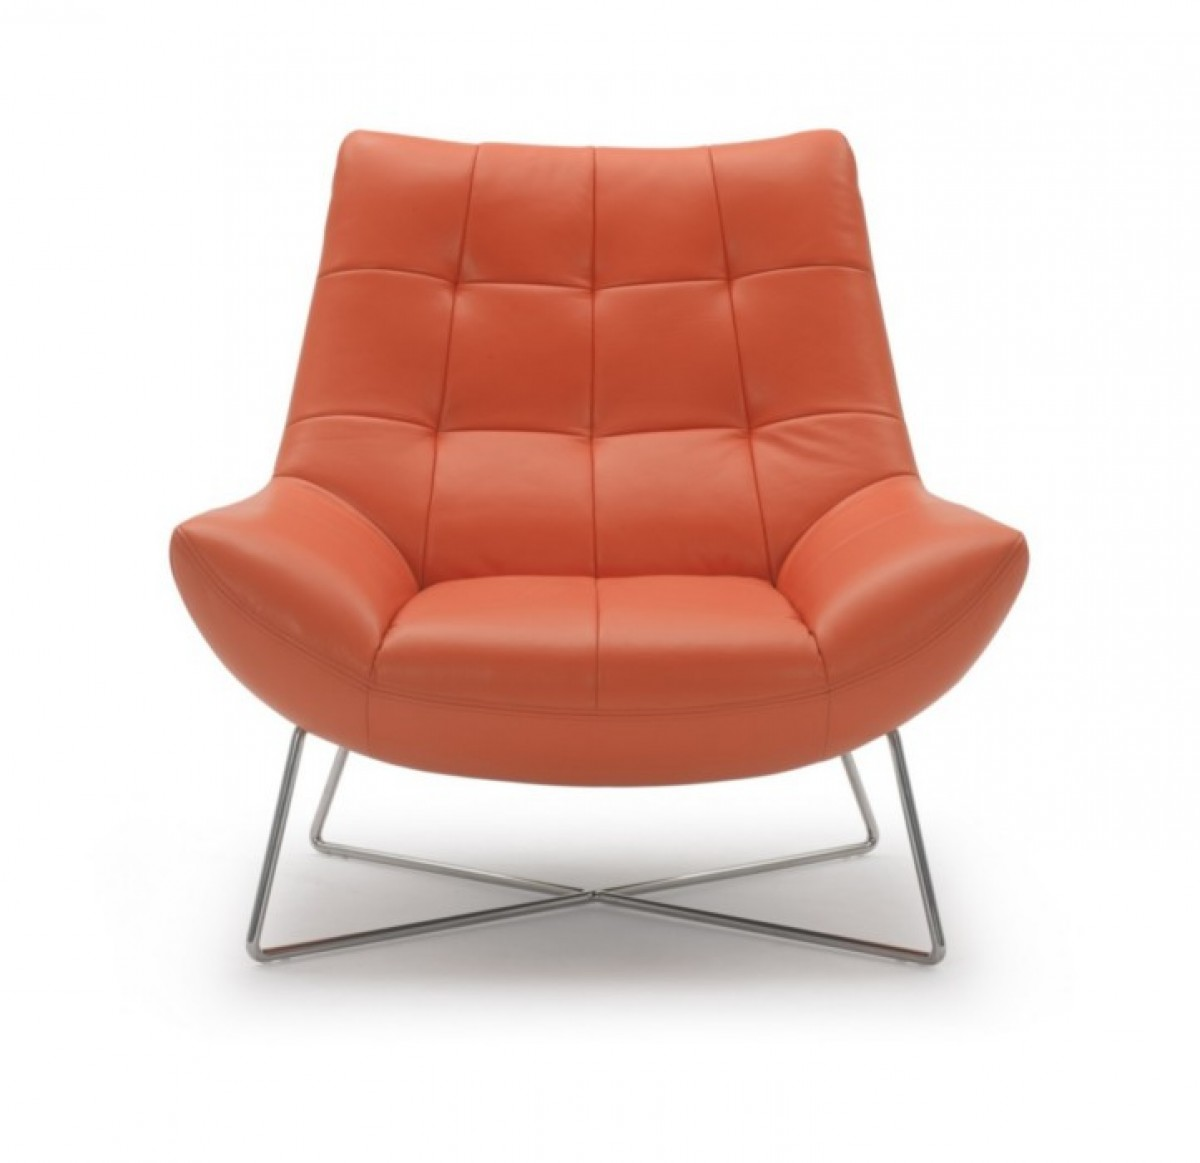 Modern Orange Chair Modern Orange Leather And Stainless Steel Lounge Chair